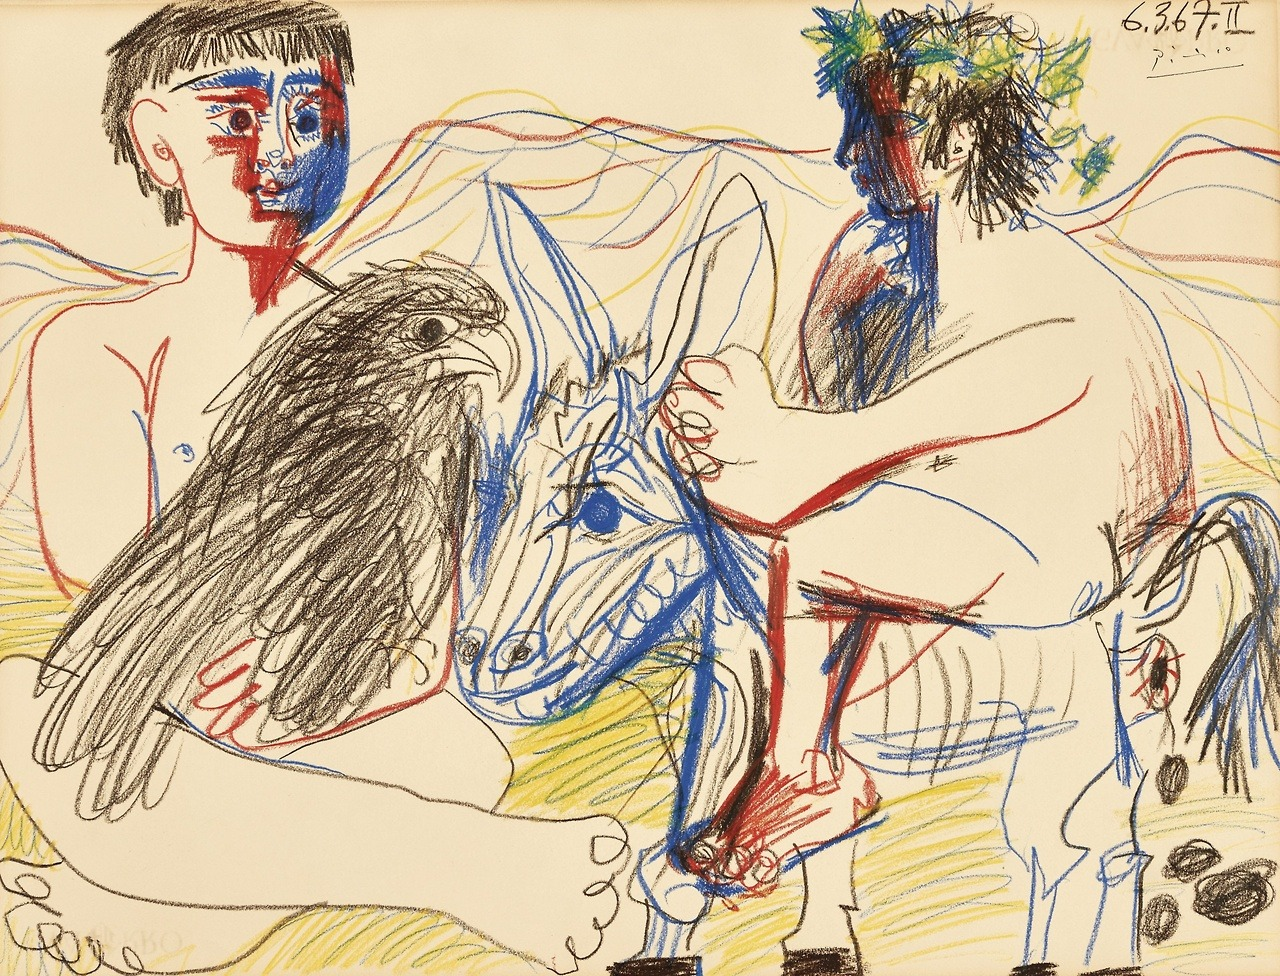 """atmospheric-minimalism:""""Pablo Picasso, Adolescents, aigle et âne II, 6-March/1967, Colored crayons on paper, 49,5 x 65 cm"""""""